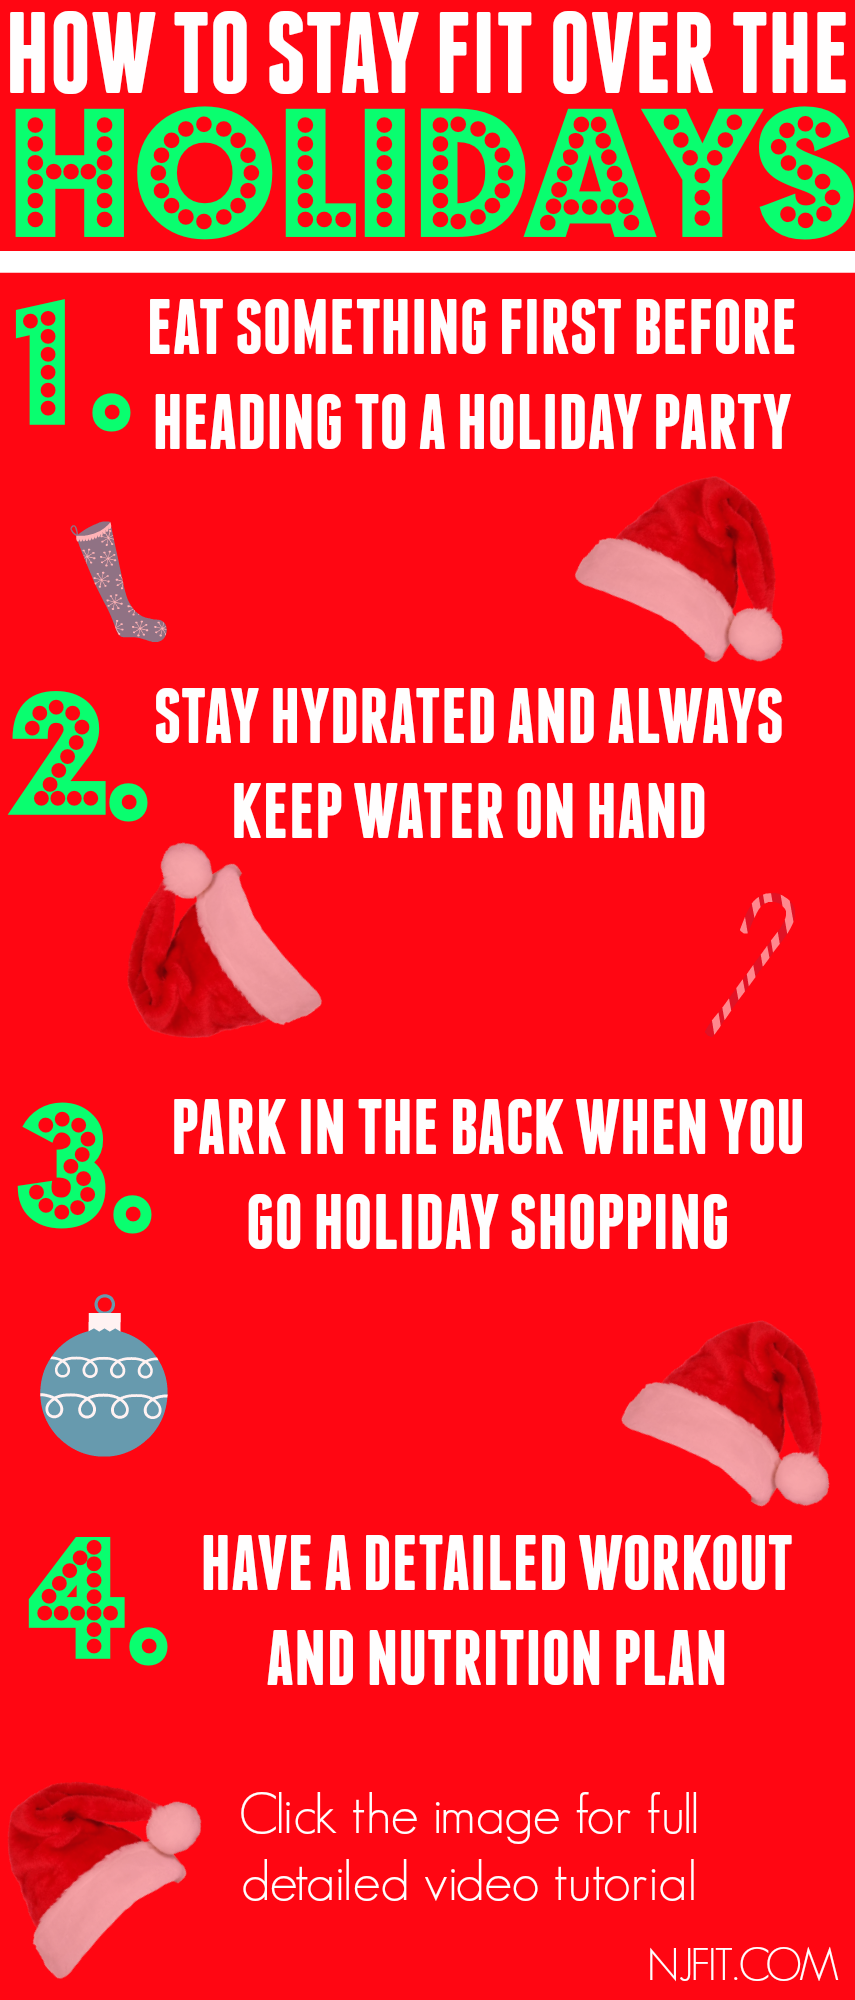 How to AVOID the Holiday Weight Gain!! Saying NO to Santa Belly! http://nataliejillfitness.com/how-to-not-gain-weight-over-the-holidays/